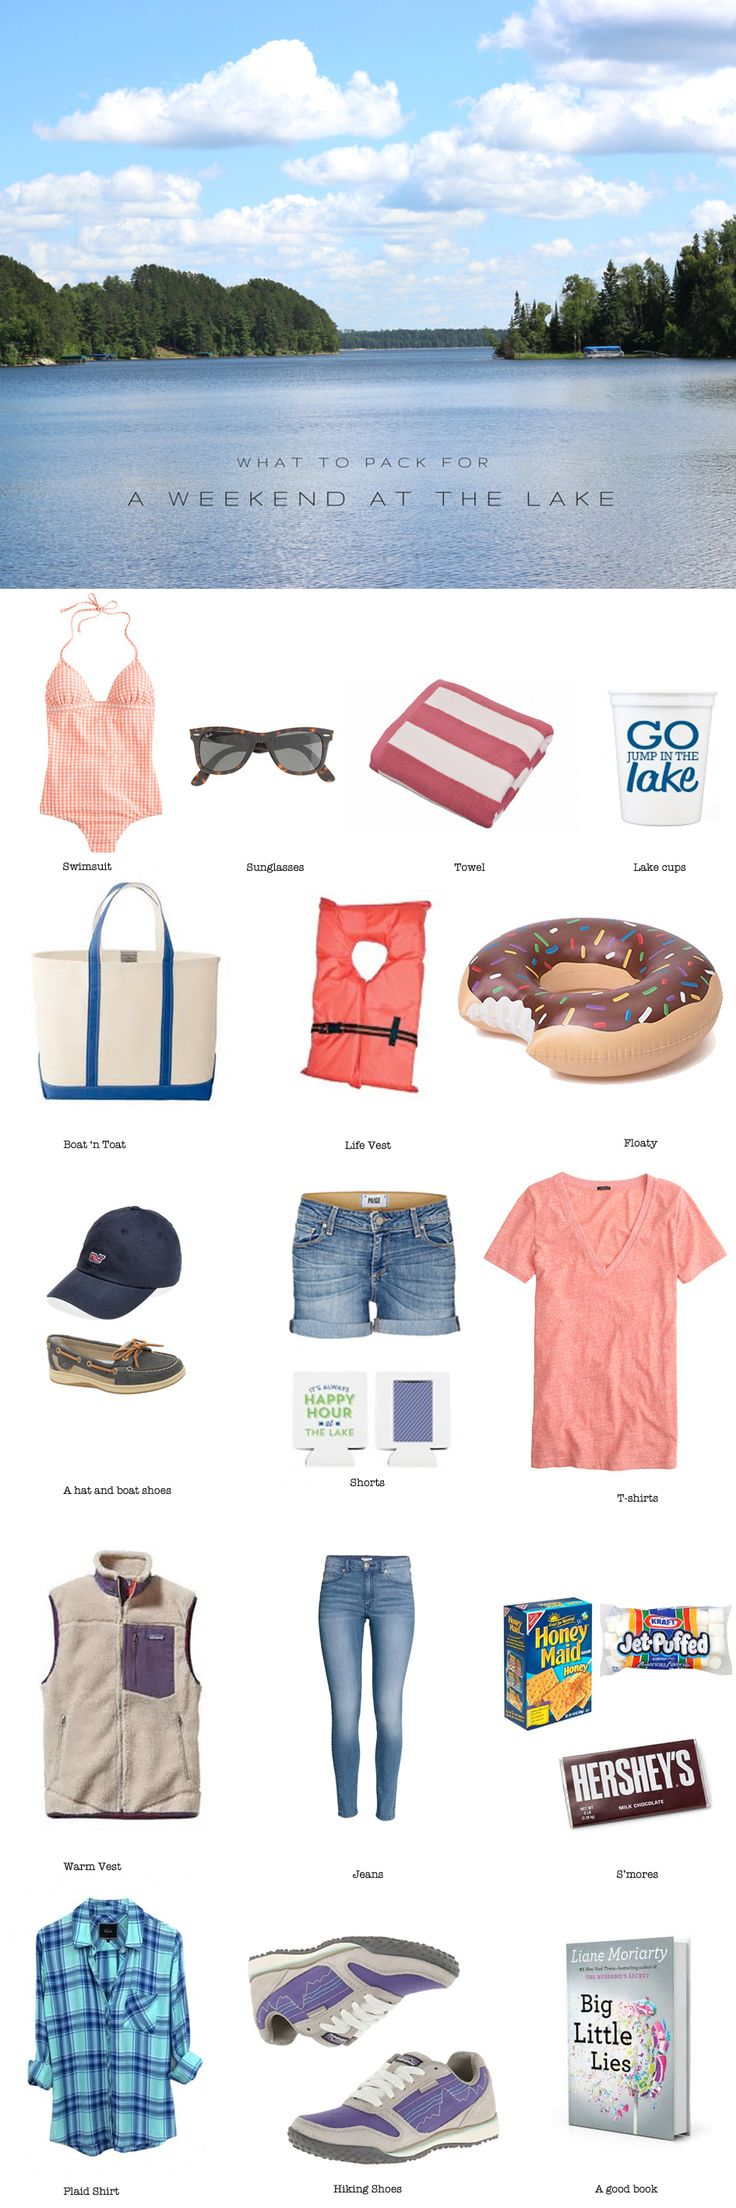 What to pack for a weekend at the lake. You're complete packing list for the perfect weekend getaway!